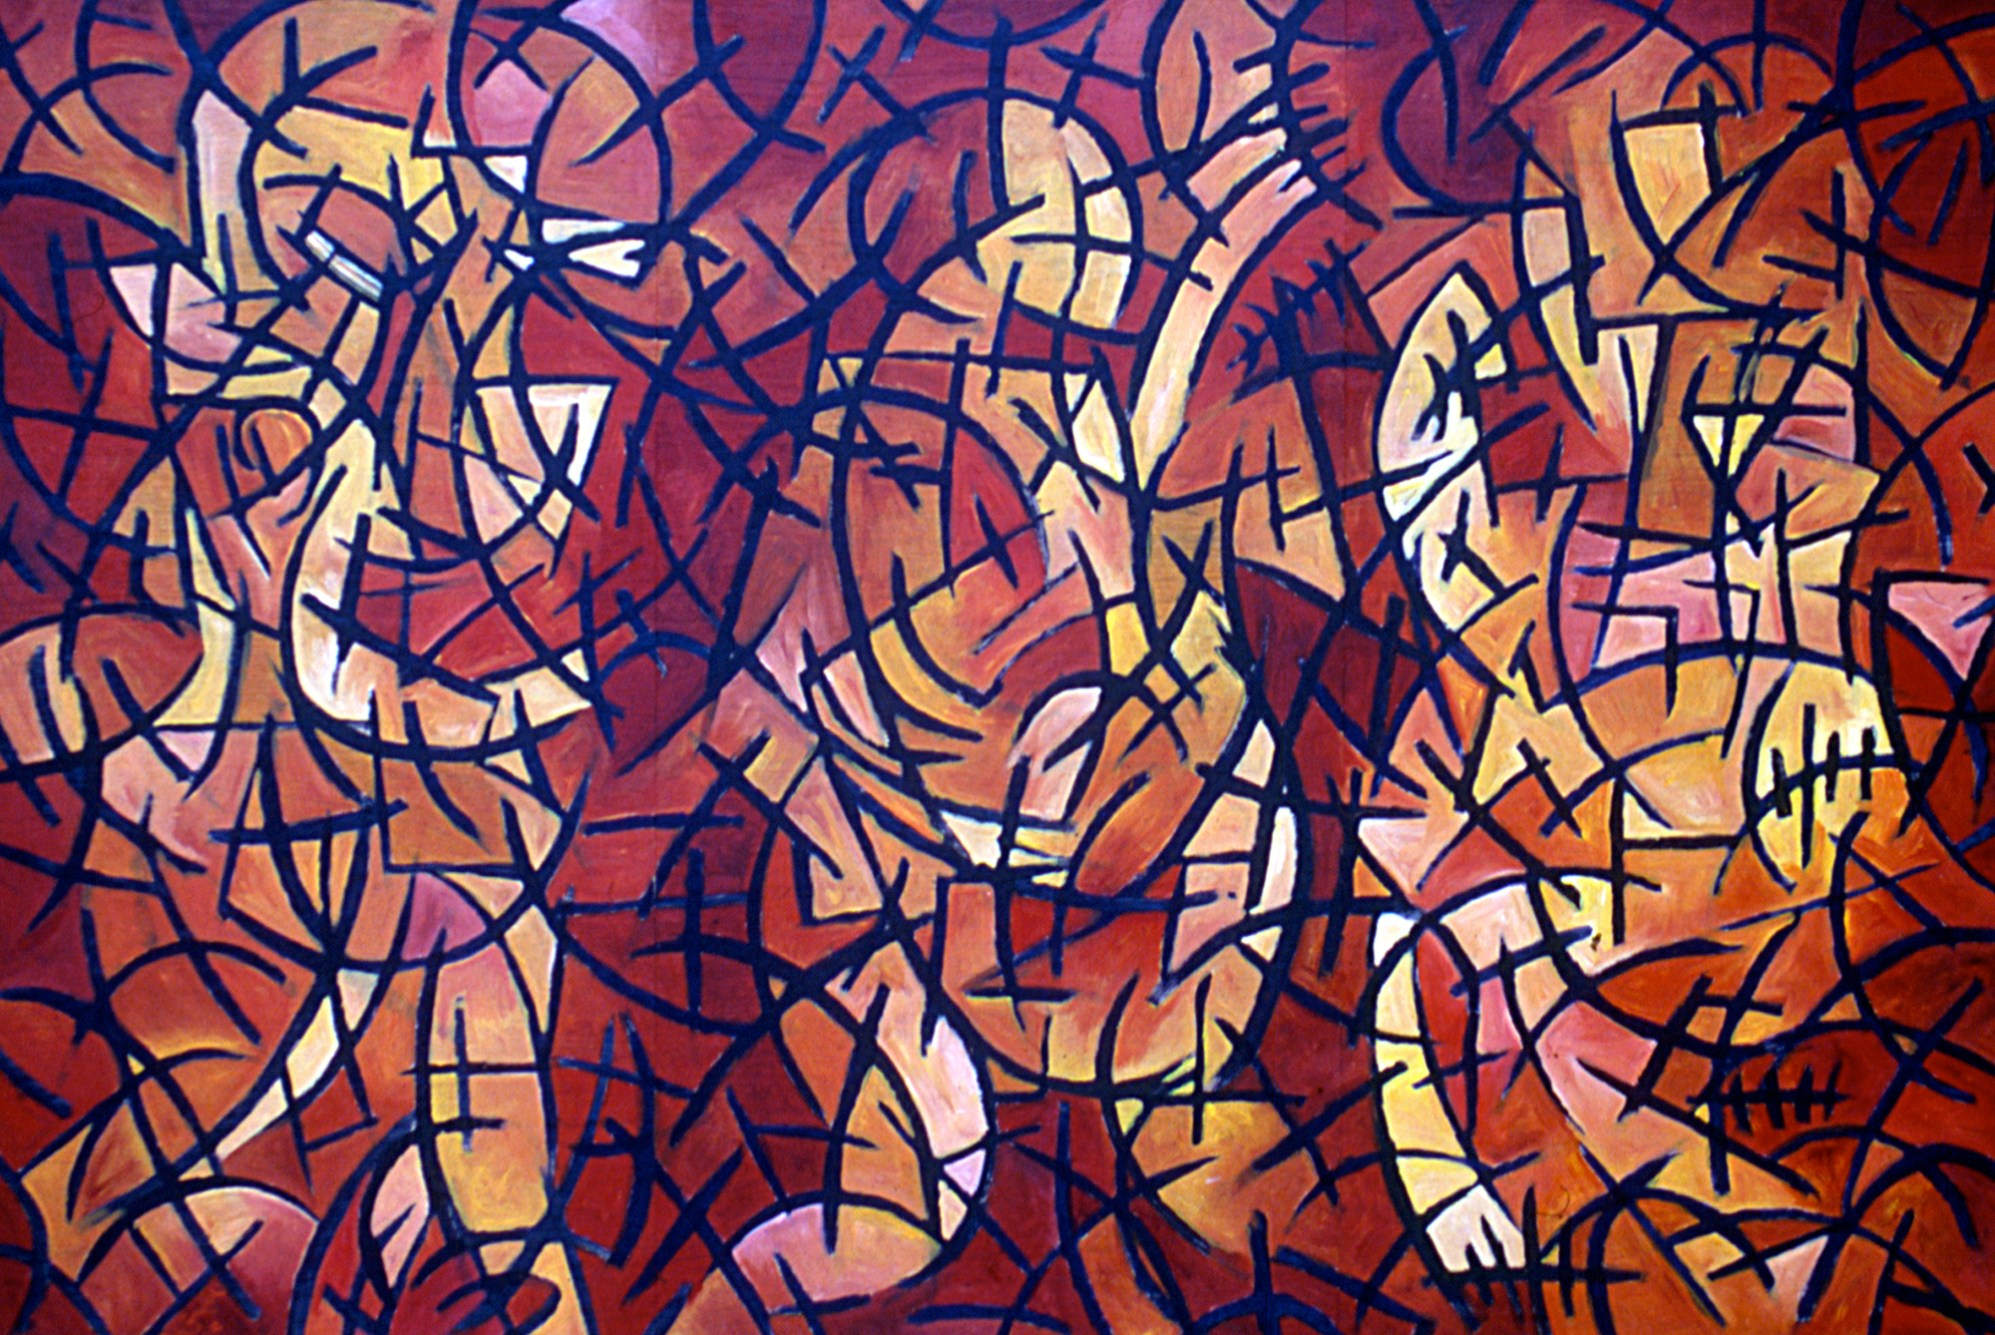 Large Panel Abstract Painting by Rhyan Taylor